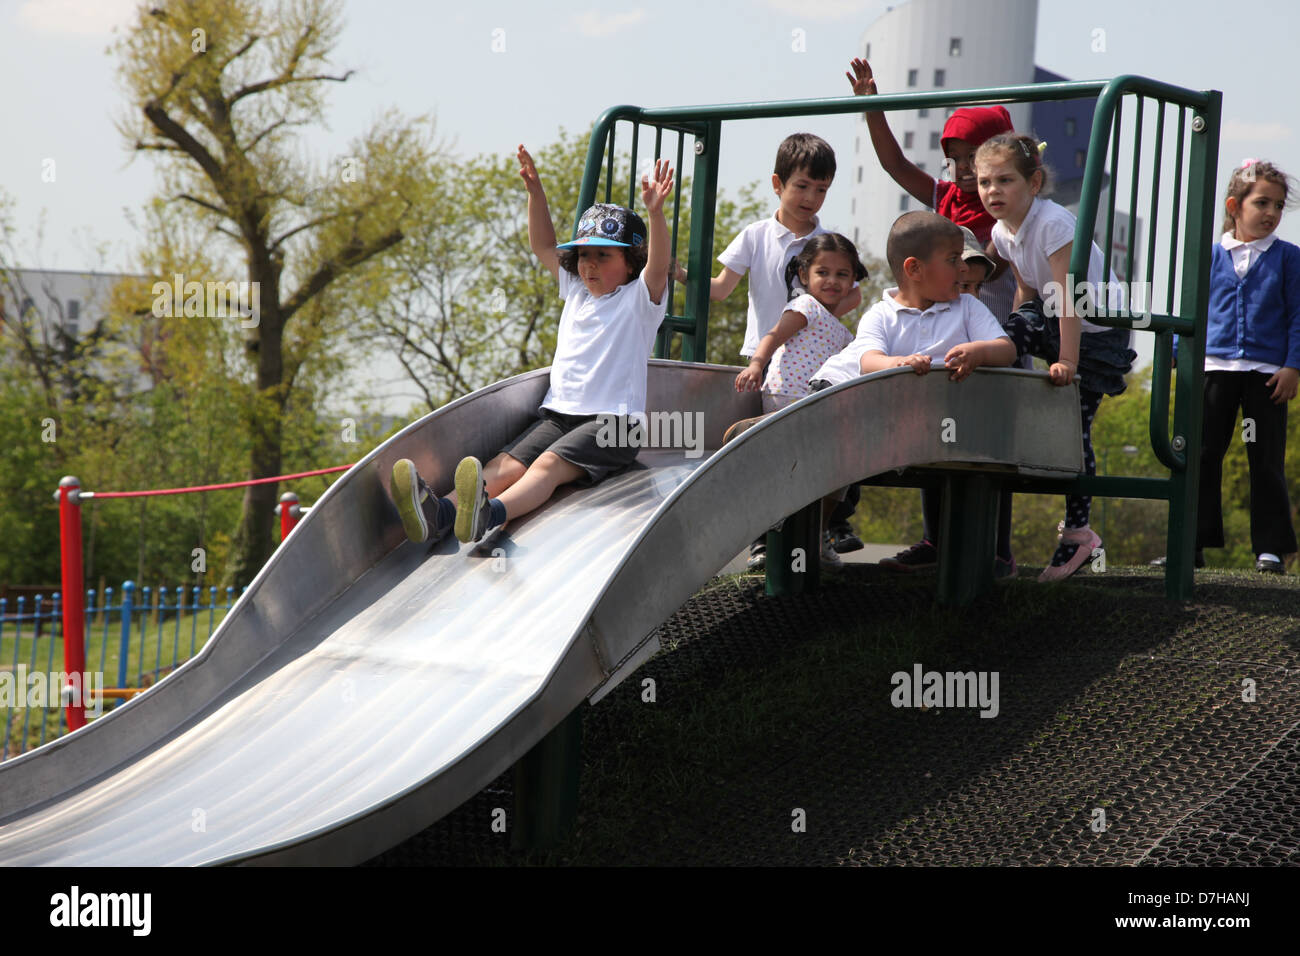 Children playing on a slide in a playground in London - Stock Image